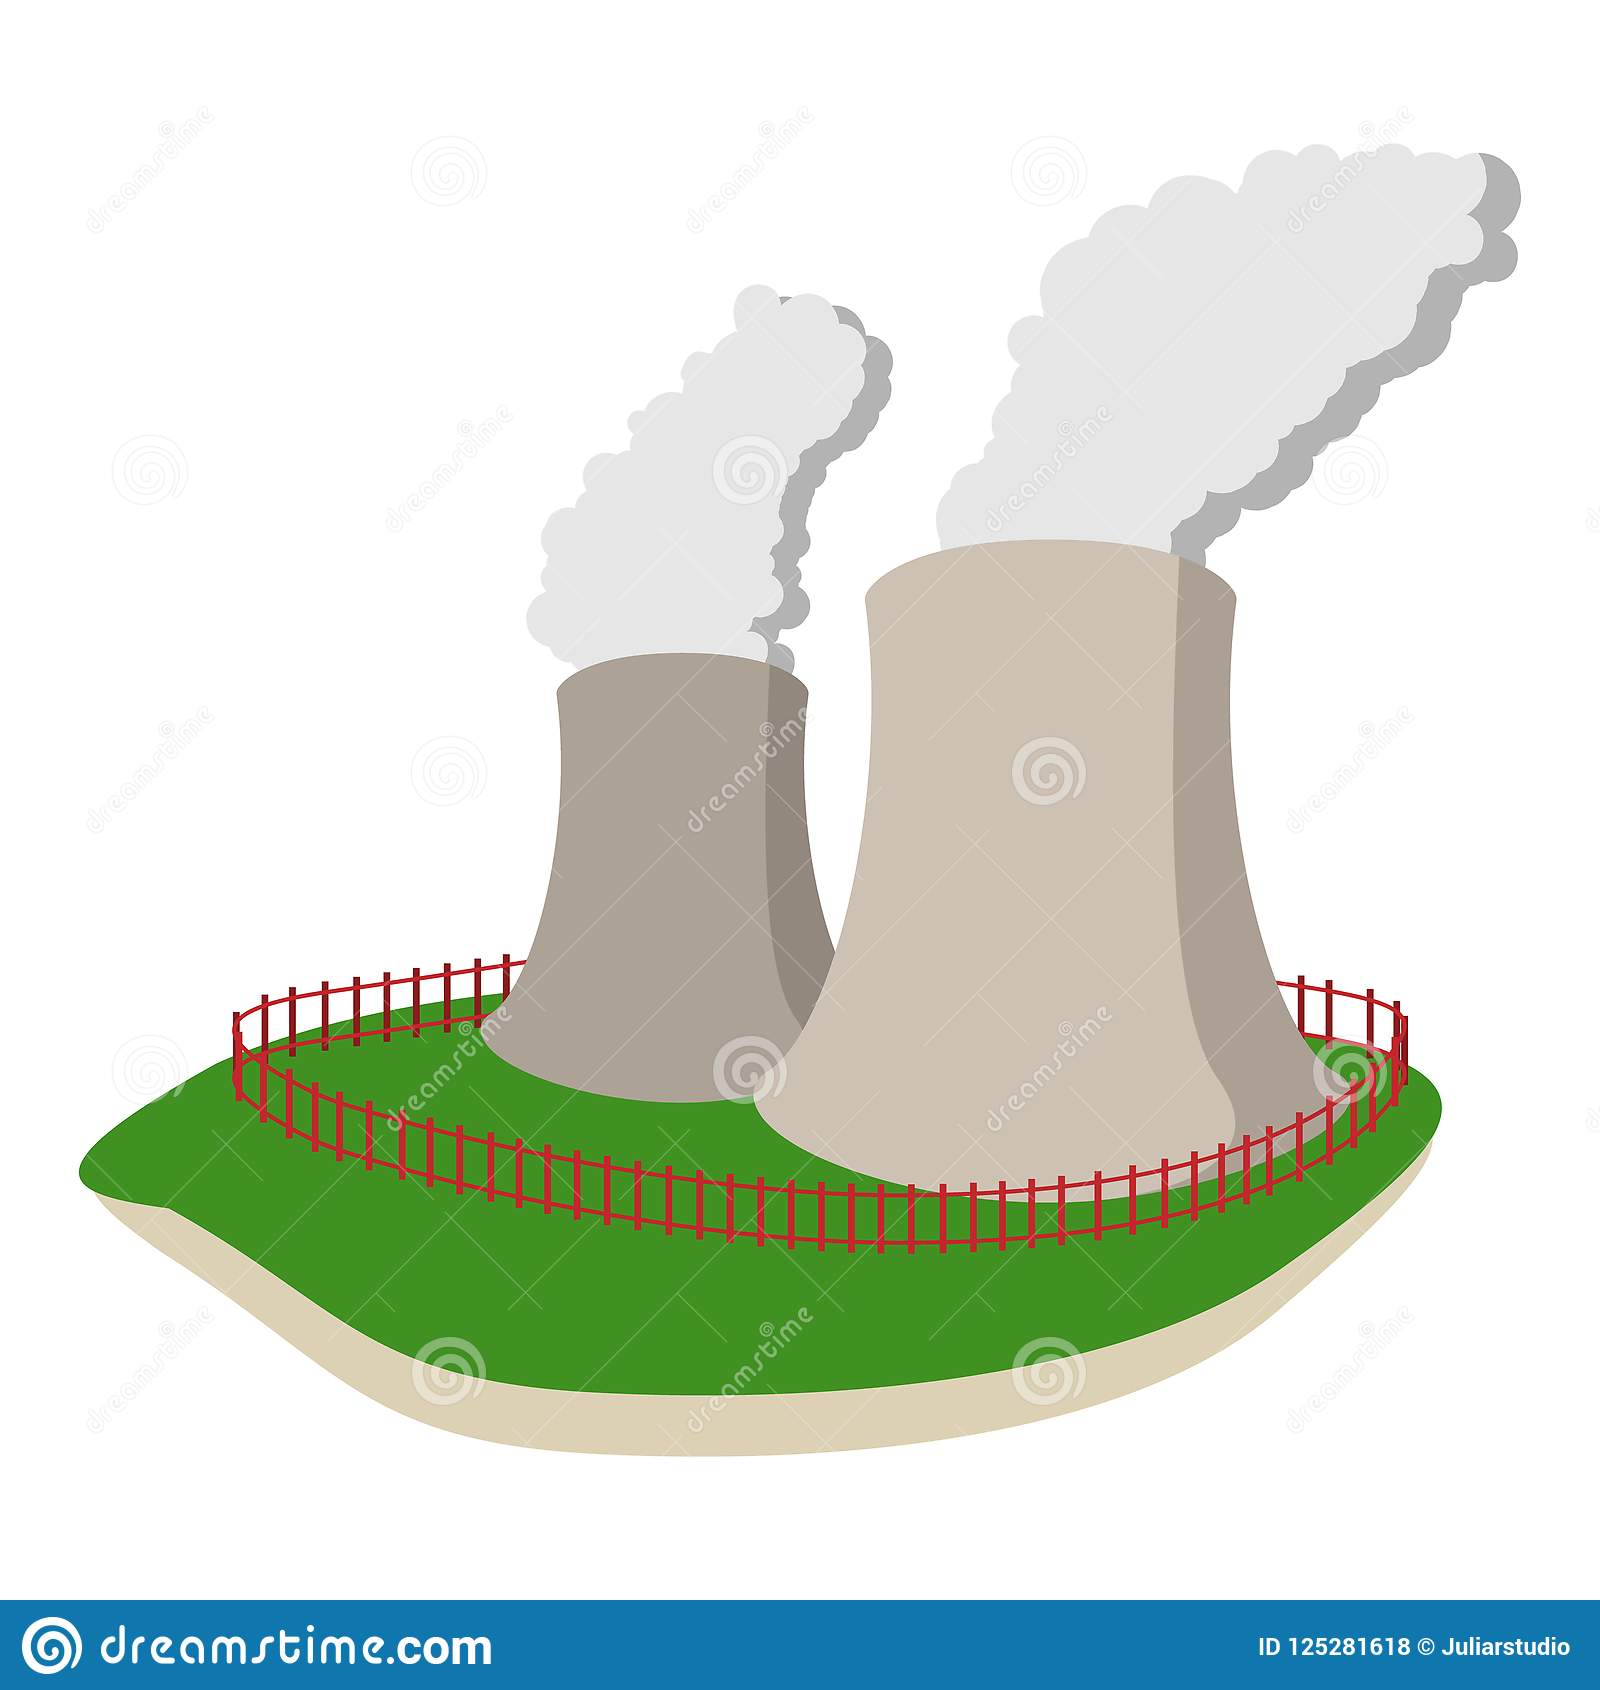 25+ Animated Power Plant Clipart